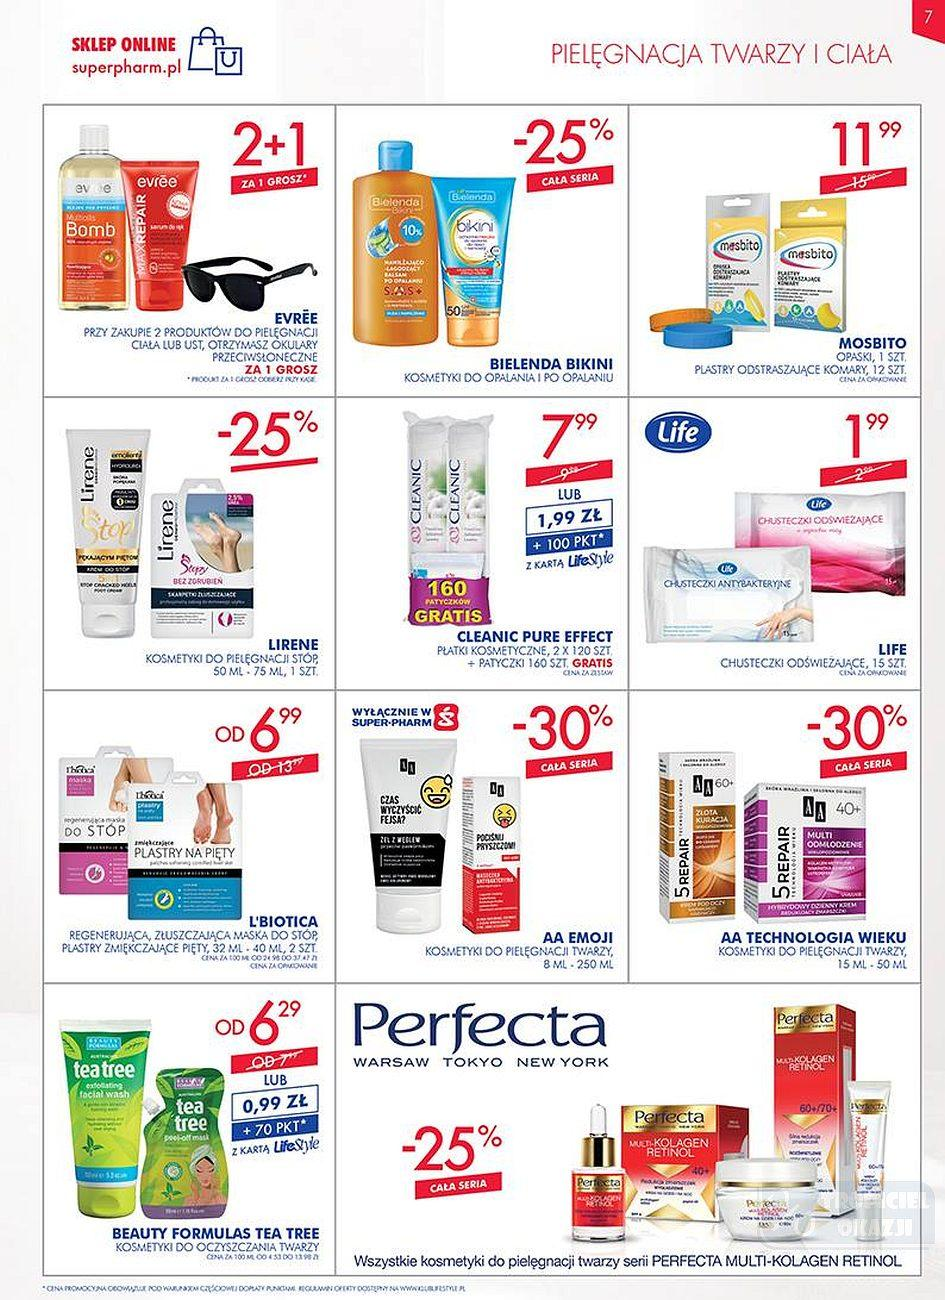 Gazetka promocyjna Superpharm do 25/07/2018 str.7